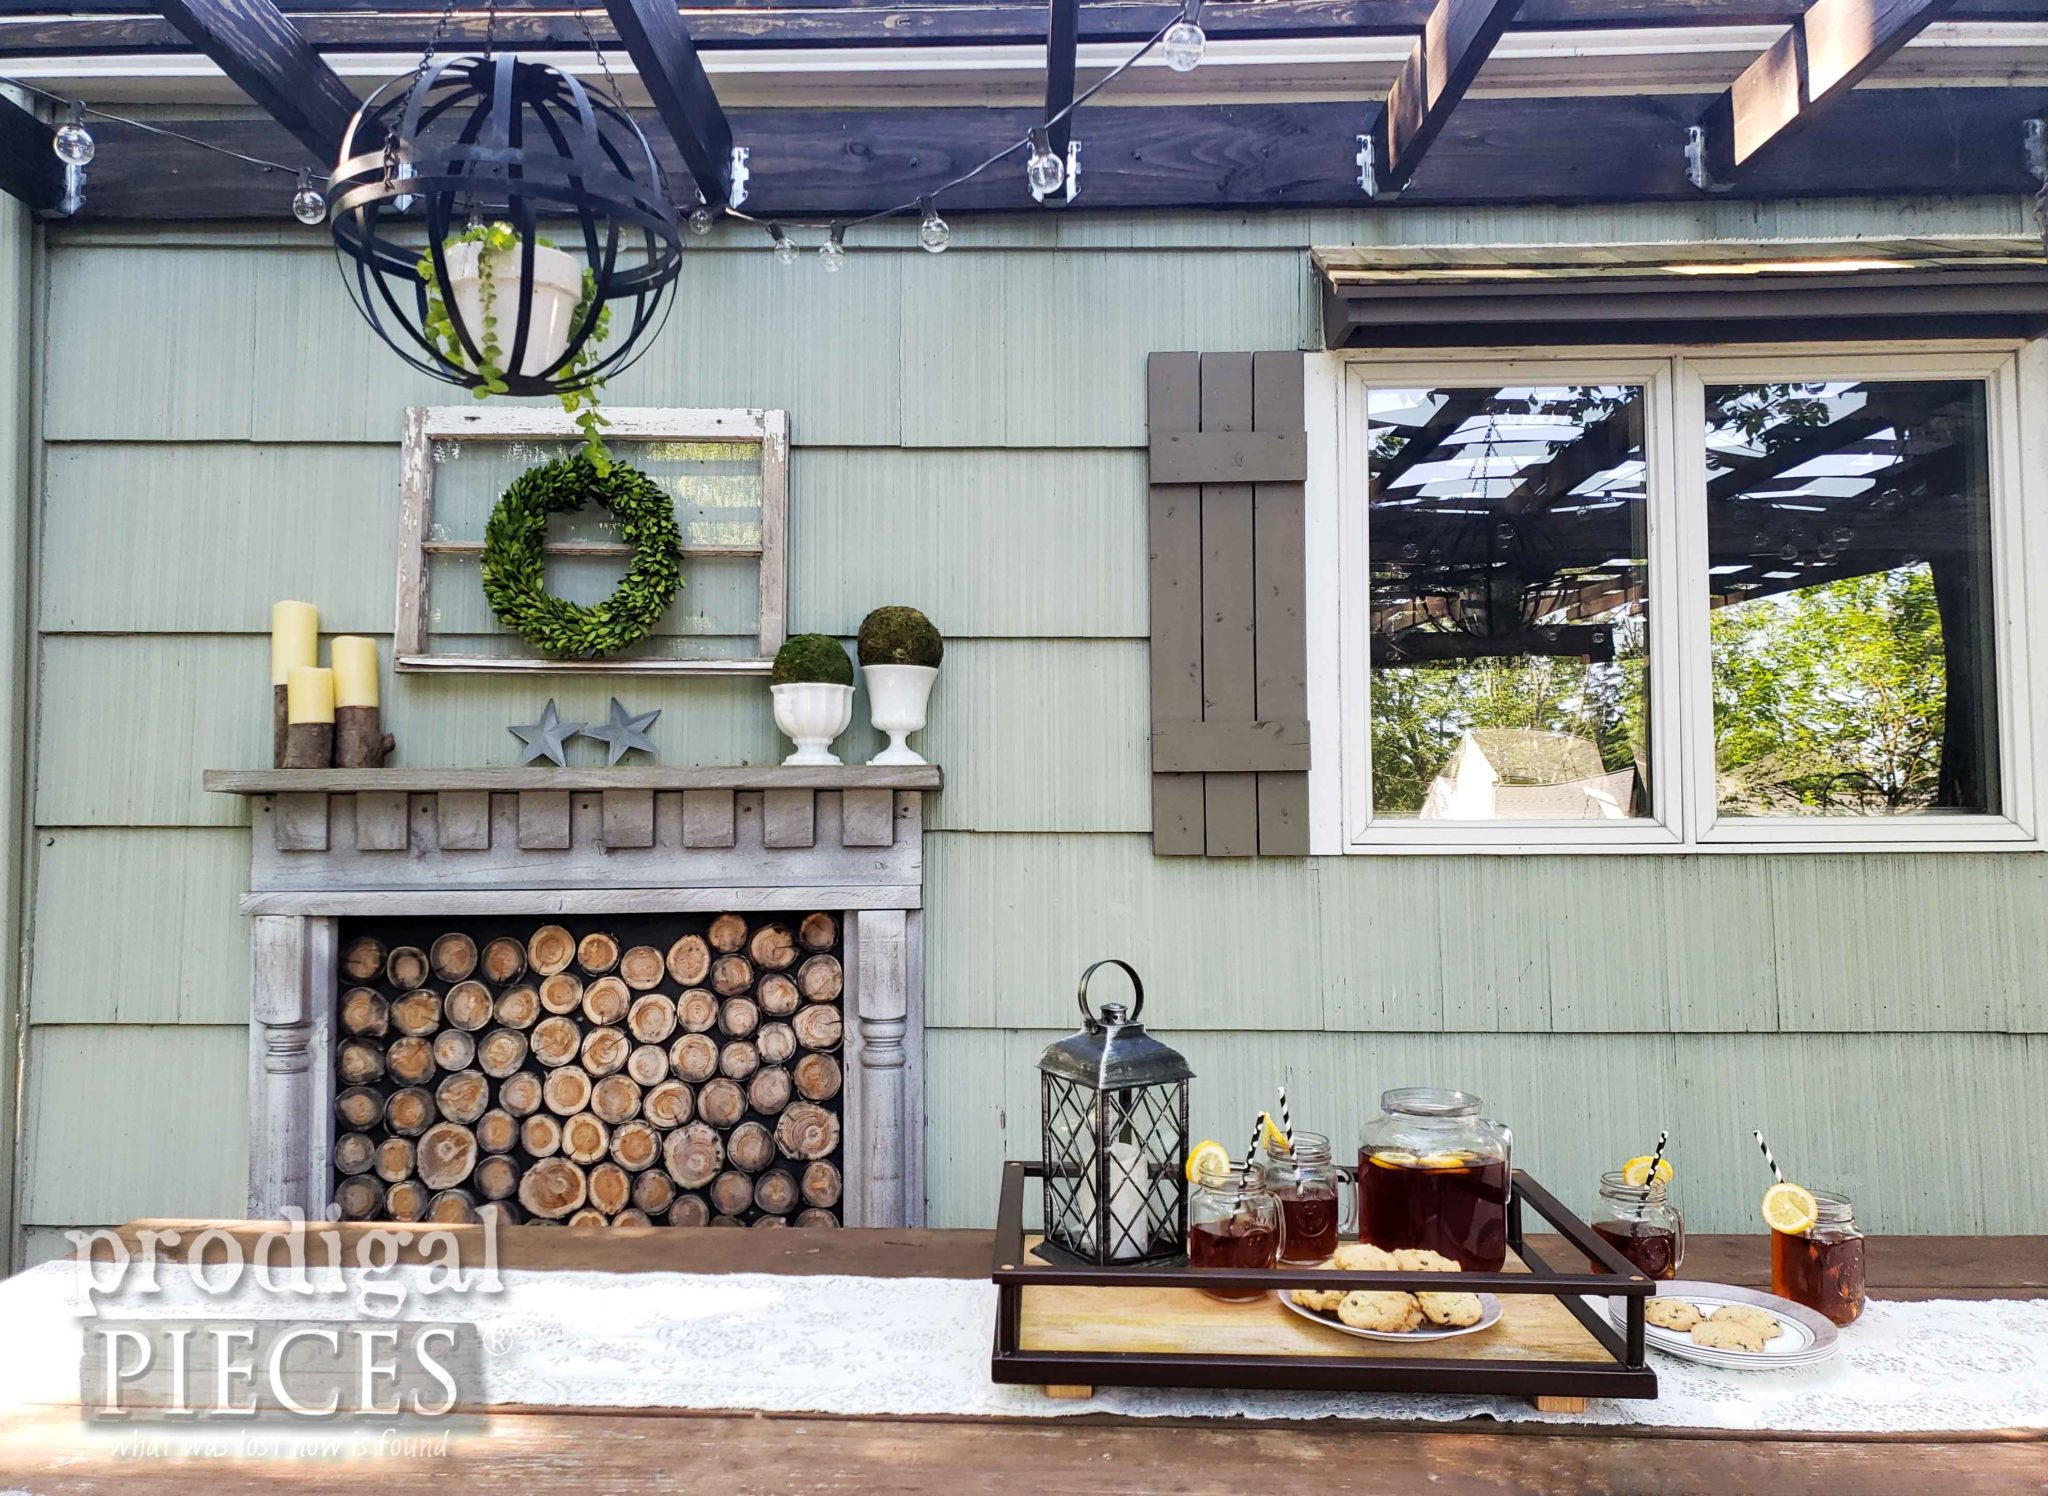 DIY Upcycled Patio Decor with Tutorials by Larissa of Prodigal Pieces | prodigalpieces.com #prodigalpieces #diy #home #outdoor #patio #summer #homedecor #farmhouse